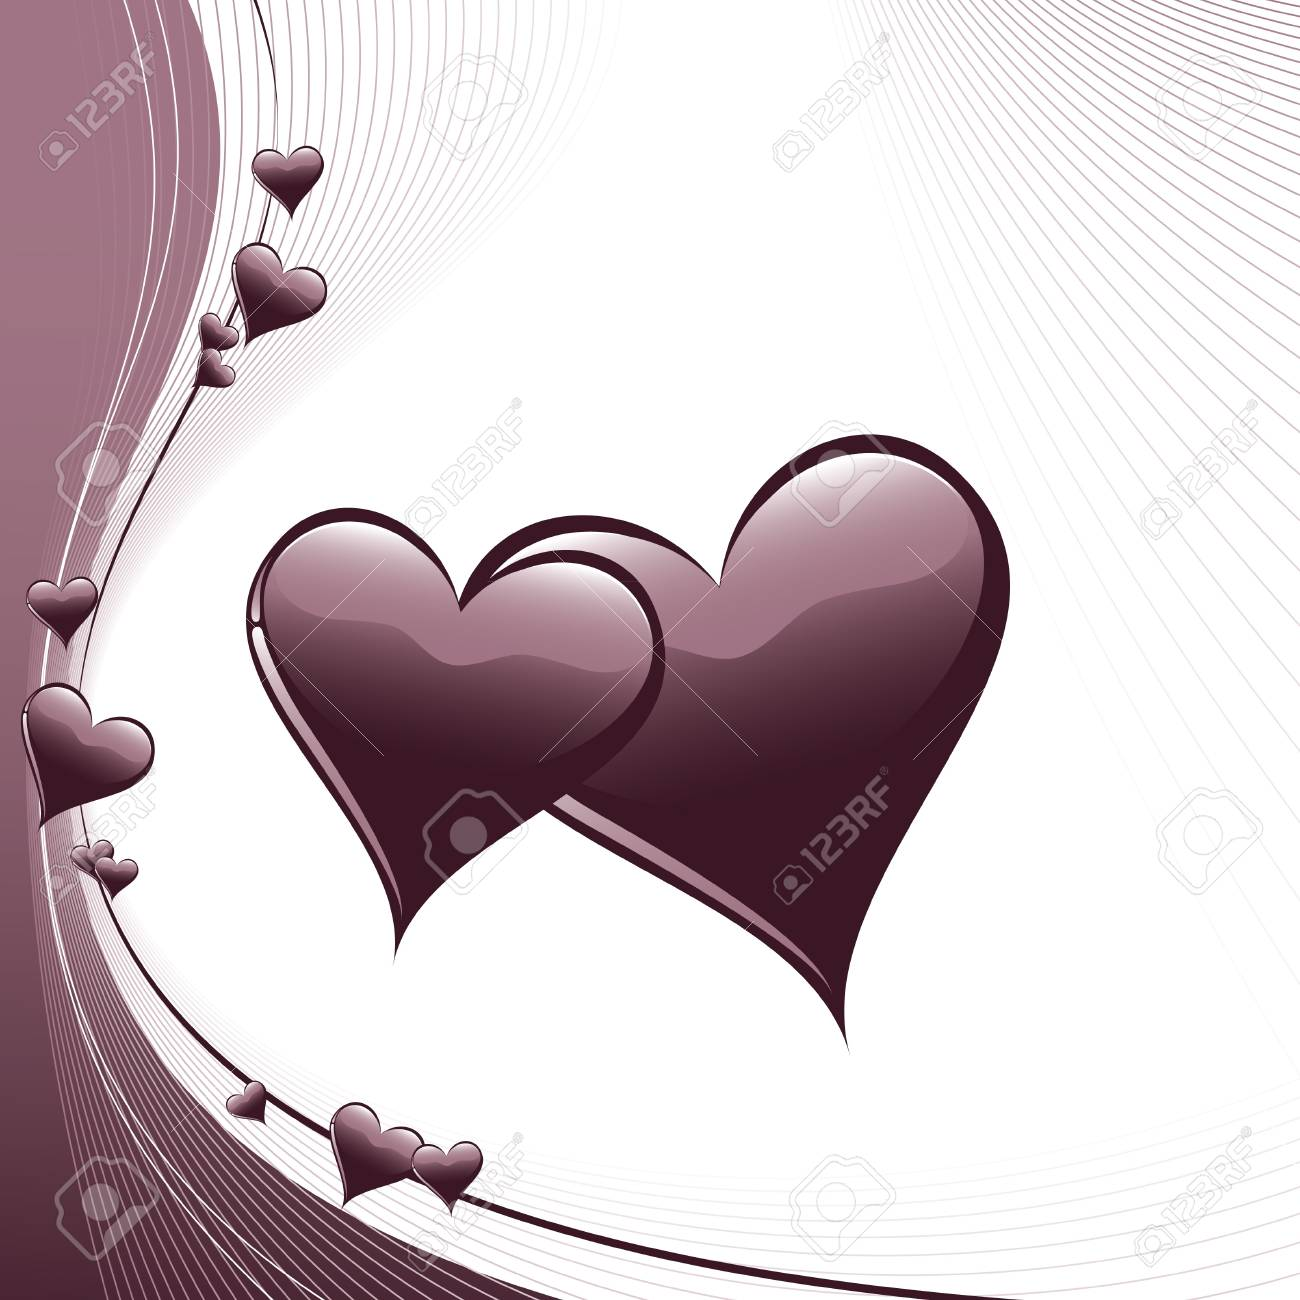 Valentine Day Background  Hearts Stock Vector - 17628124